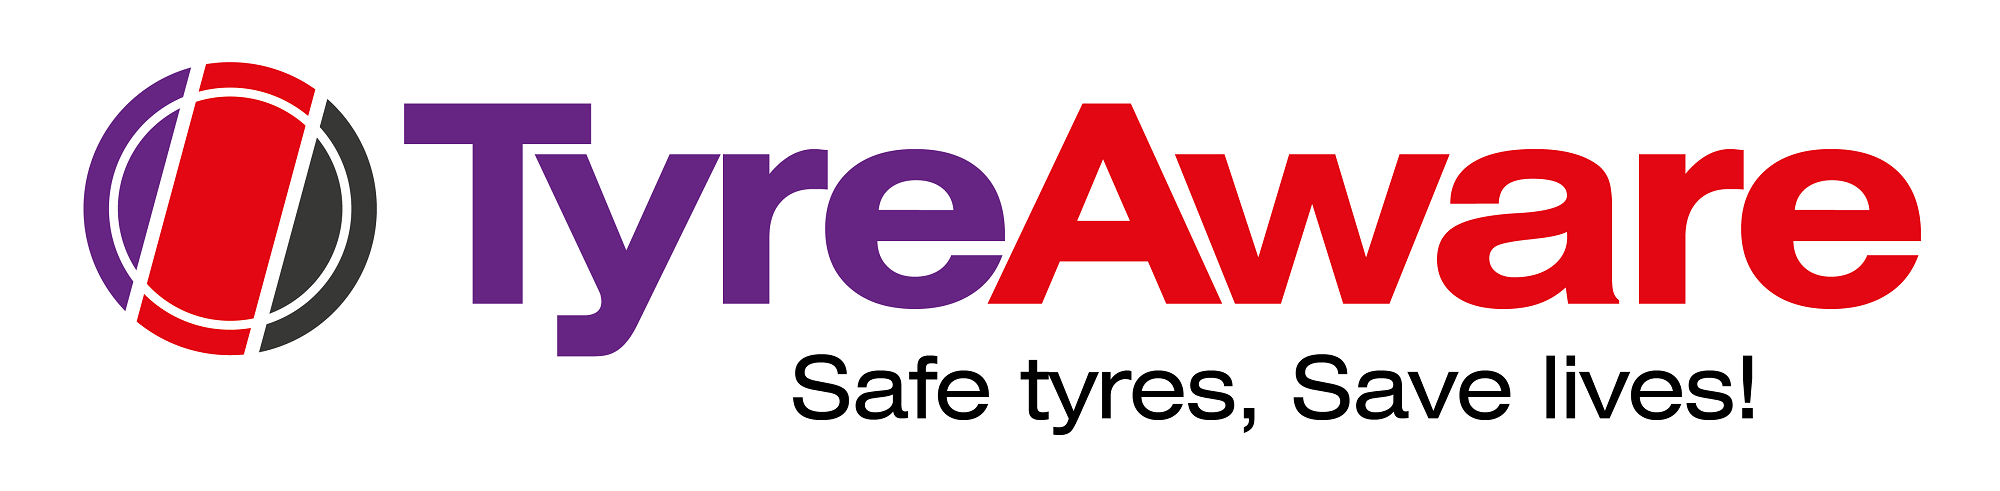 TyreAware Mobile Unit, We Come To You!